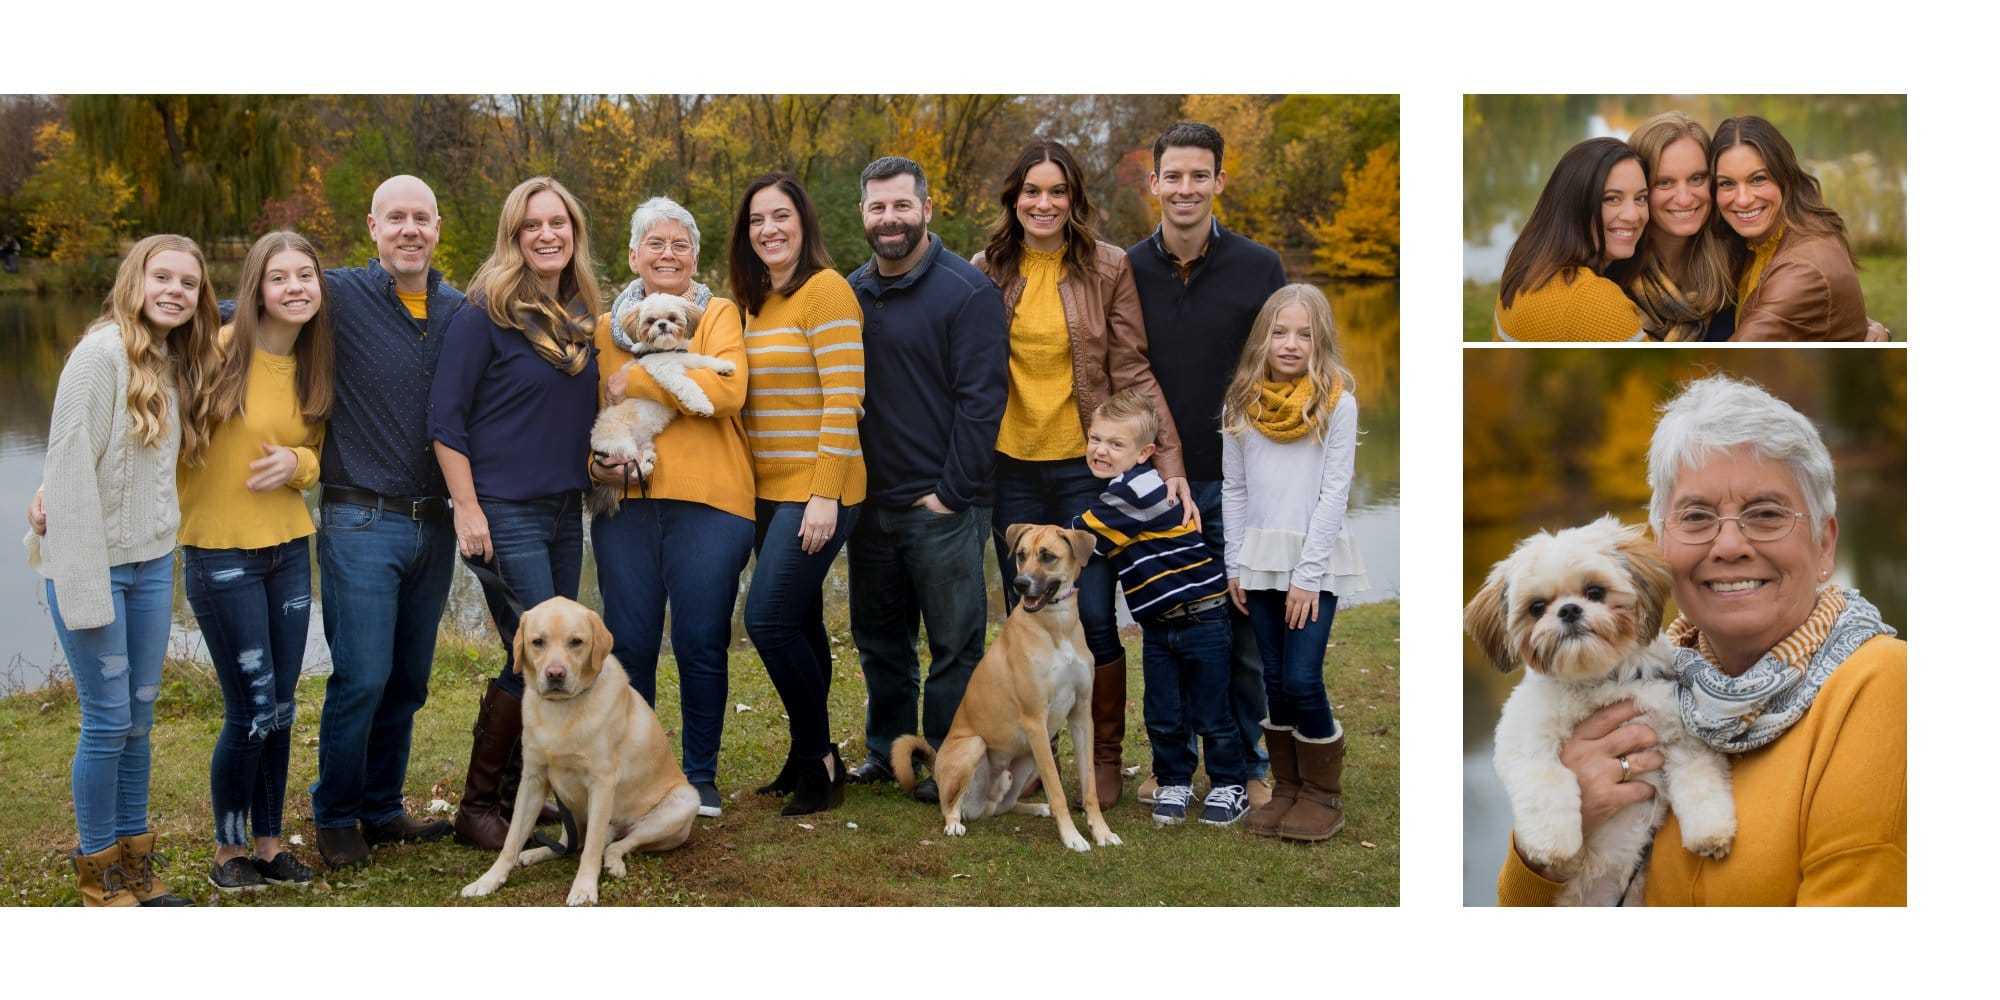 Martin Extended Family Pictures 2018